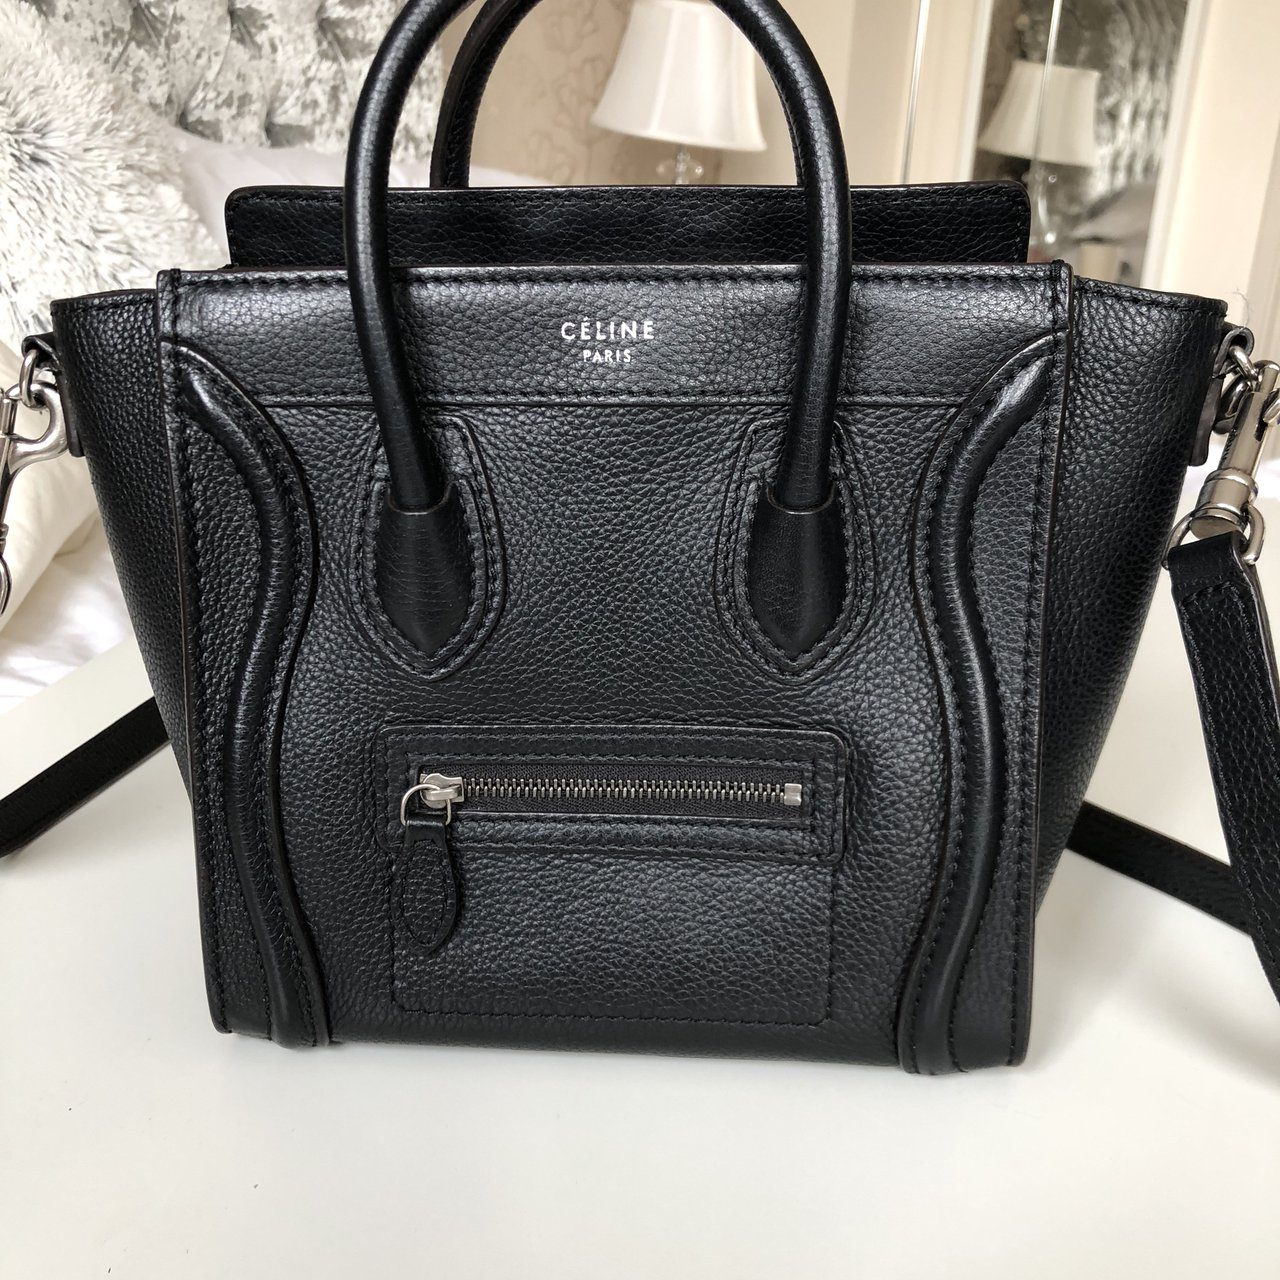 6bf3f14828e7 Céline nano luggage tote 💖 I bought this from Harrods a few - Depop